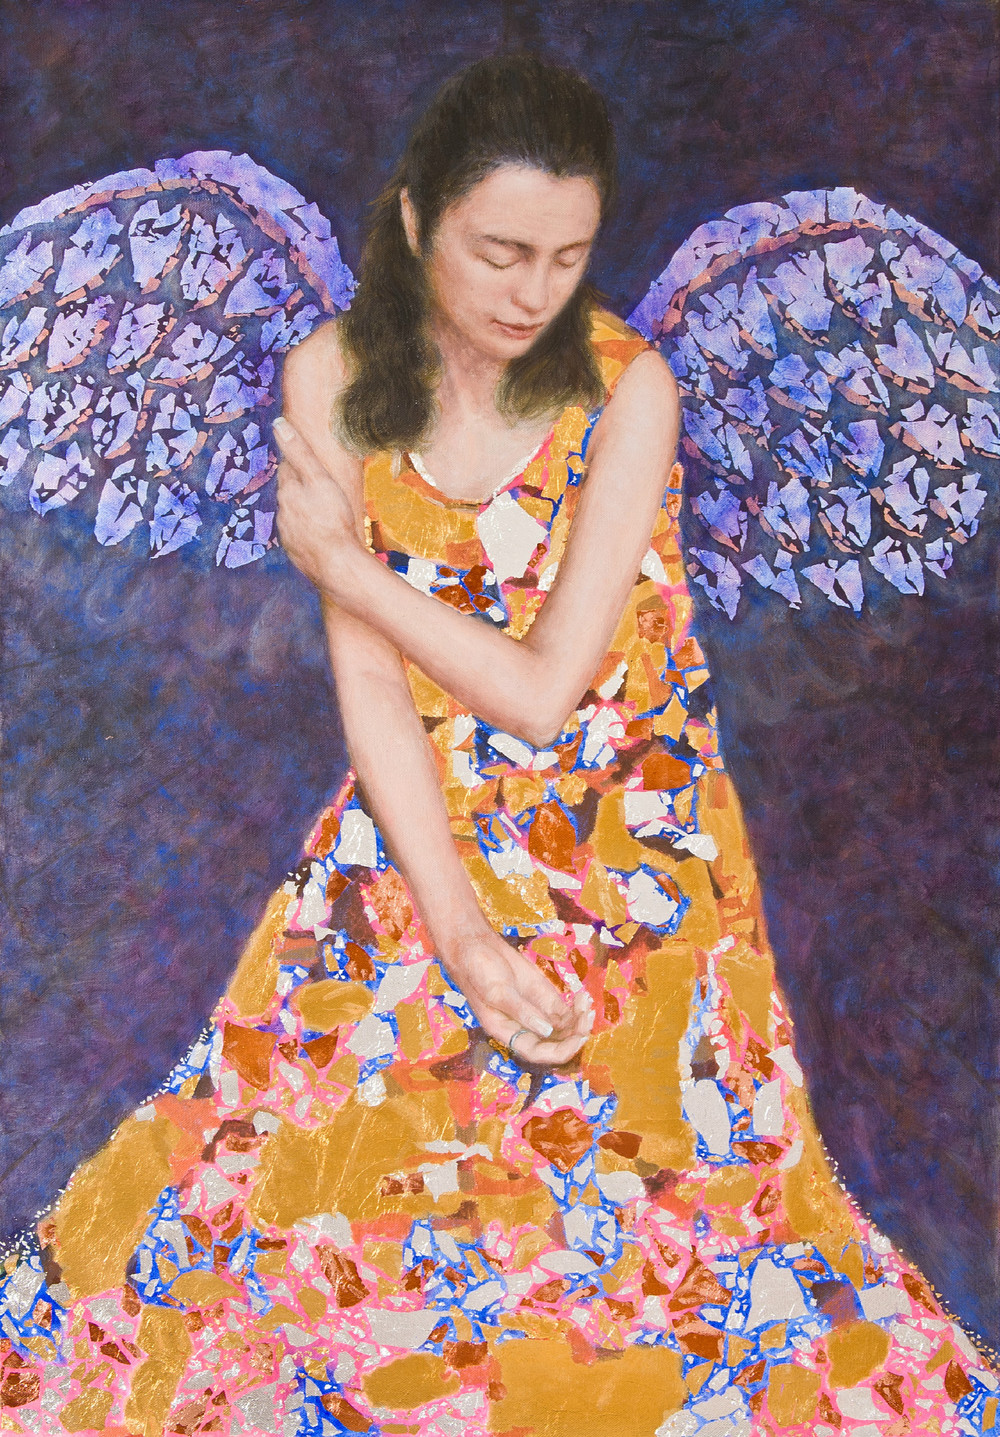 'Angel'  oil on linen, gold leaf, silver leaf, cooper leaf year: 2009 size: 1000 x 700mm